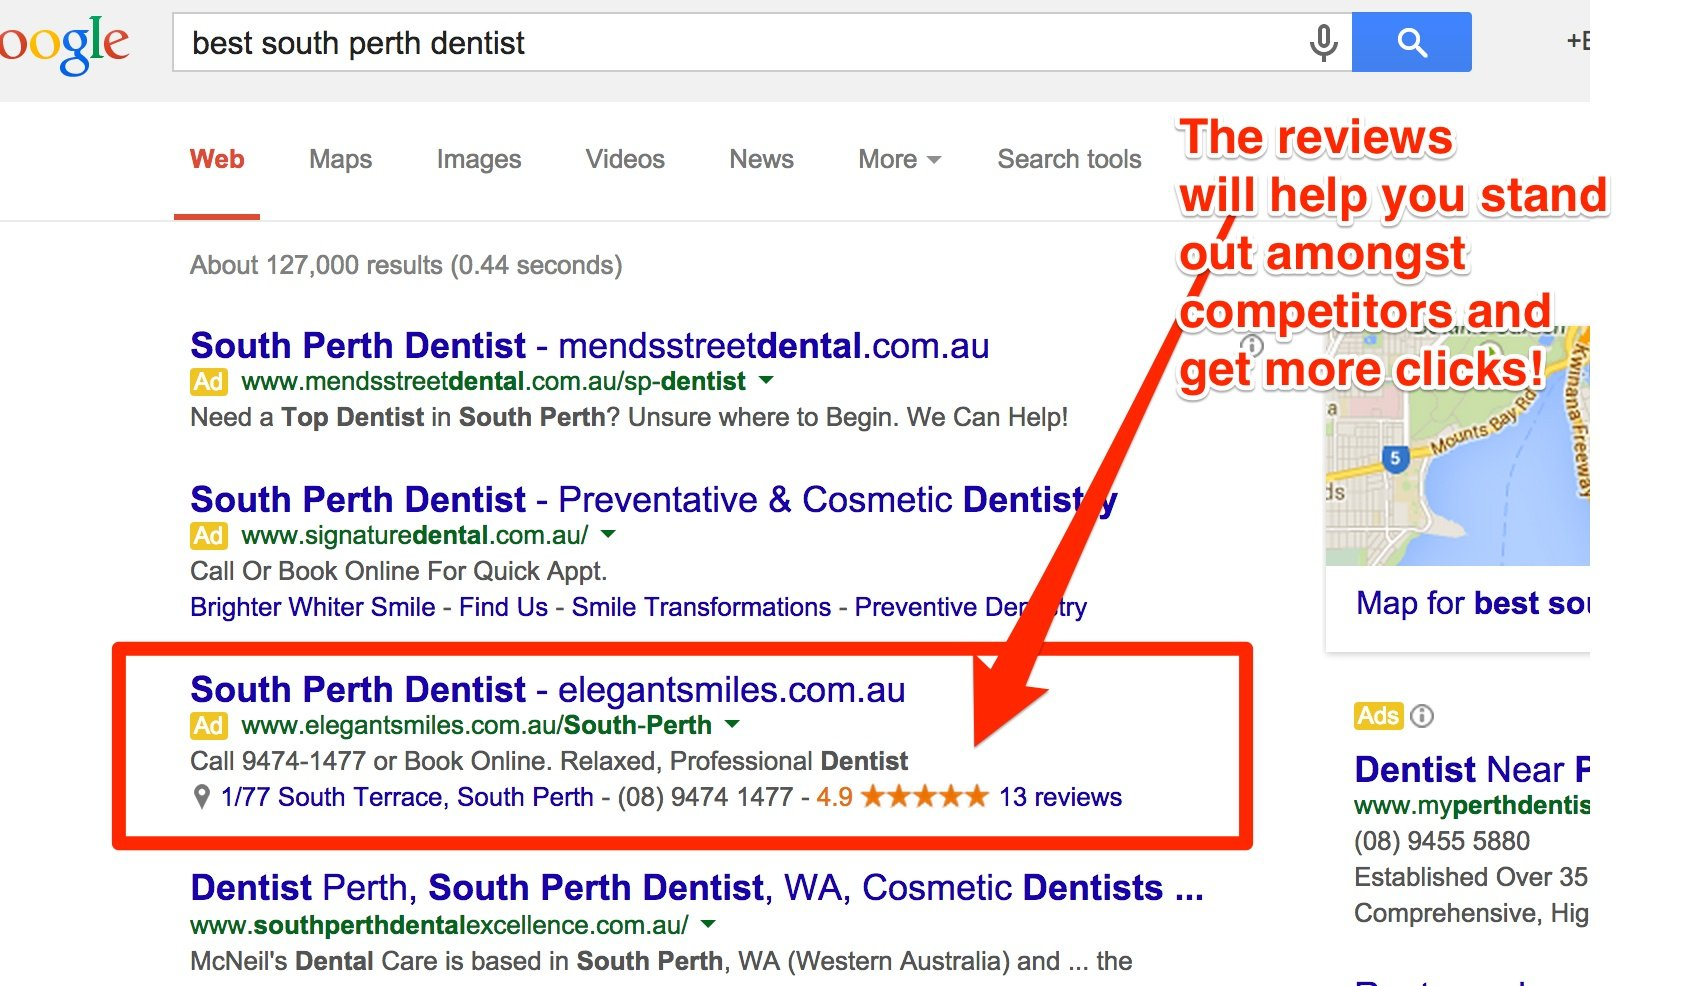 Google Plus Reviews now show in the Adwords search results